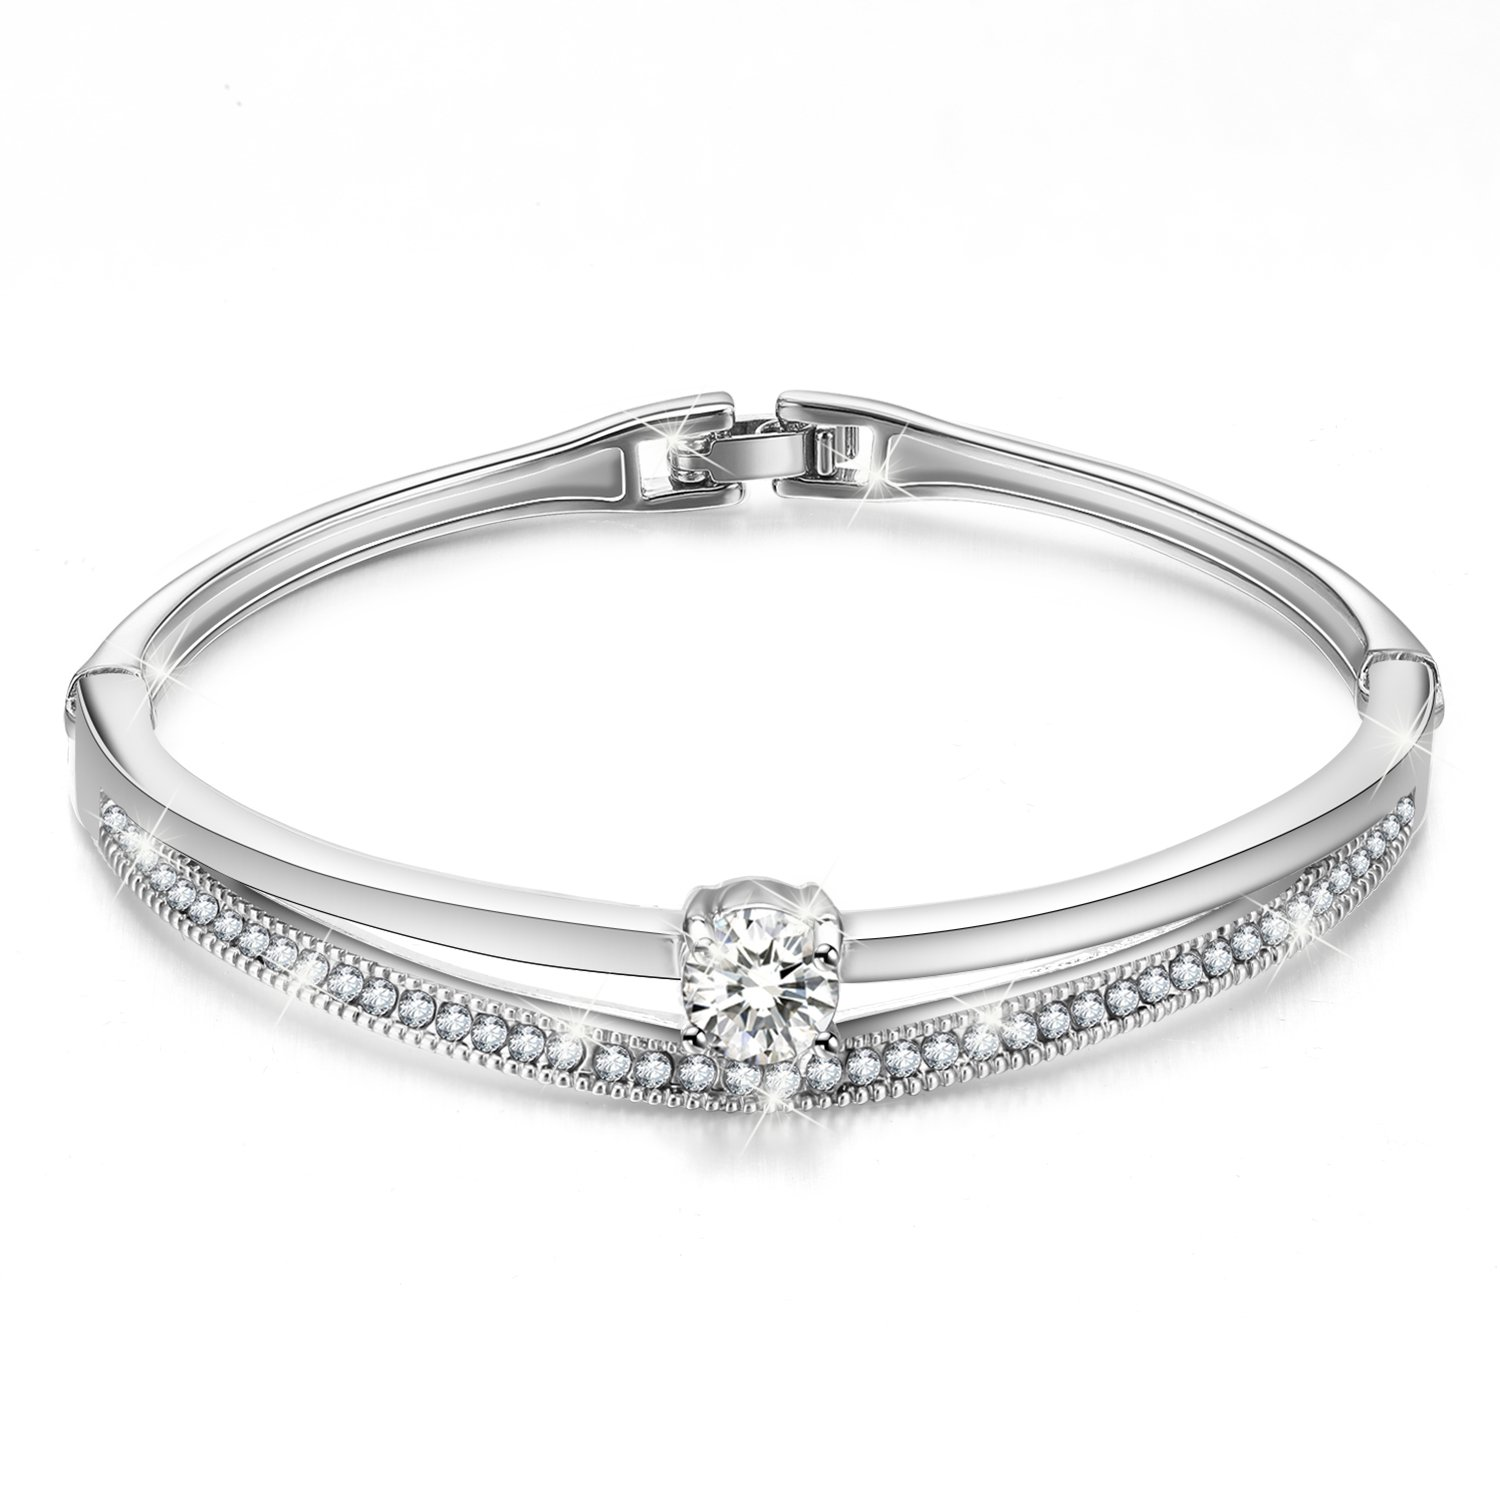 Menton Ezil Fashion Jewelry Silver Swarovski Crystals Bangle Bracelet for Women, Wife, Mom- White Gold Plated -Gift for her